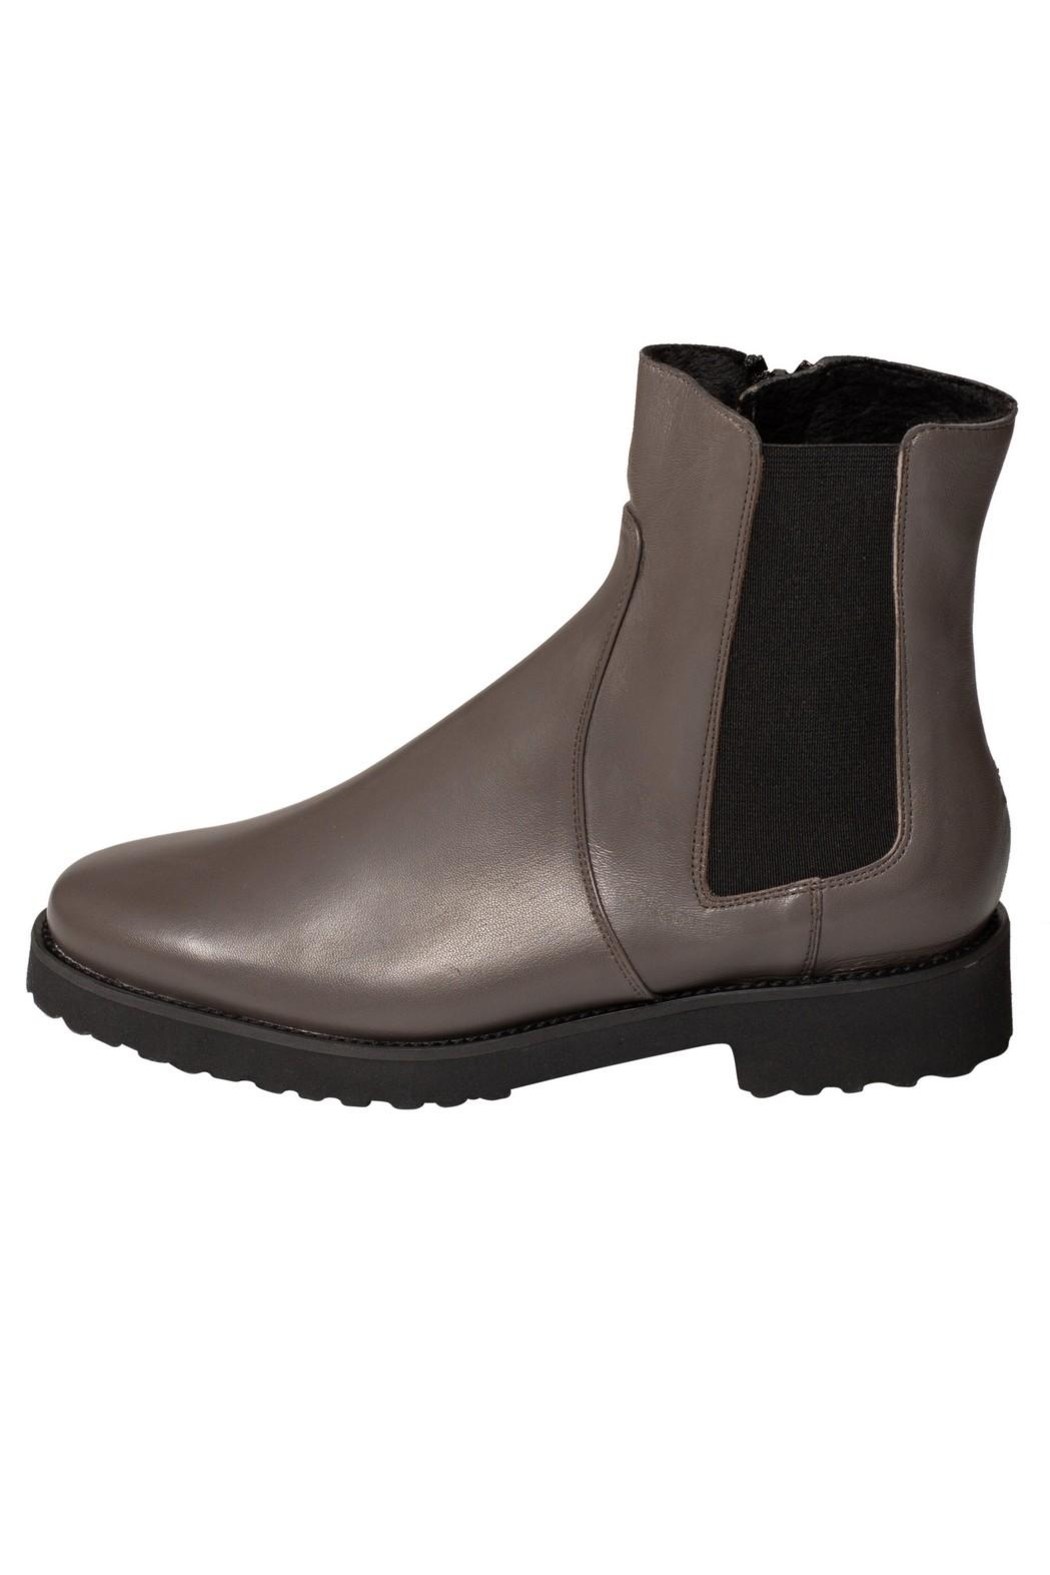 Pascucci Grey Wool-Lined Ankle-Boot - Main Image